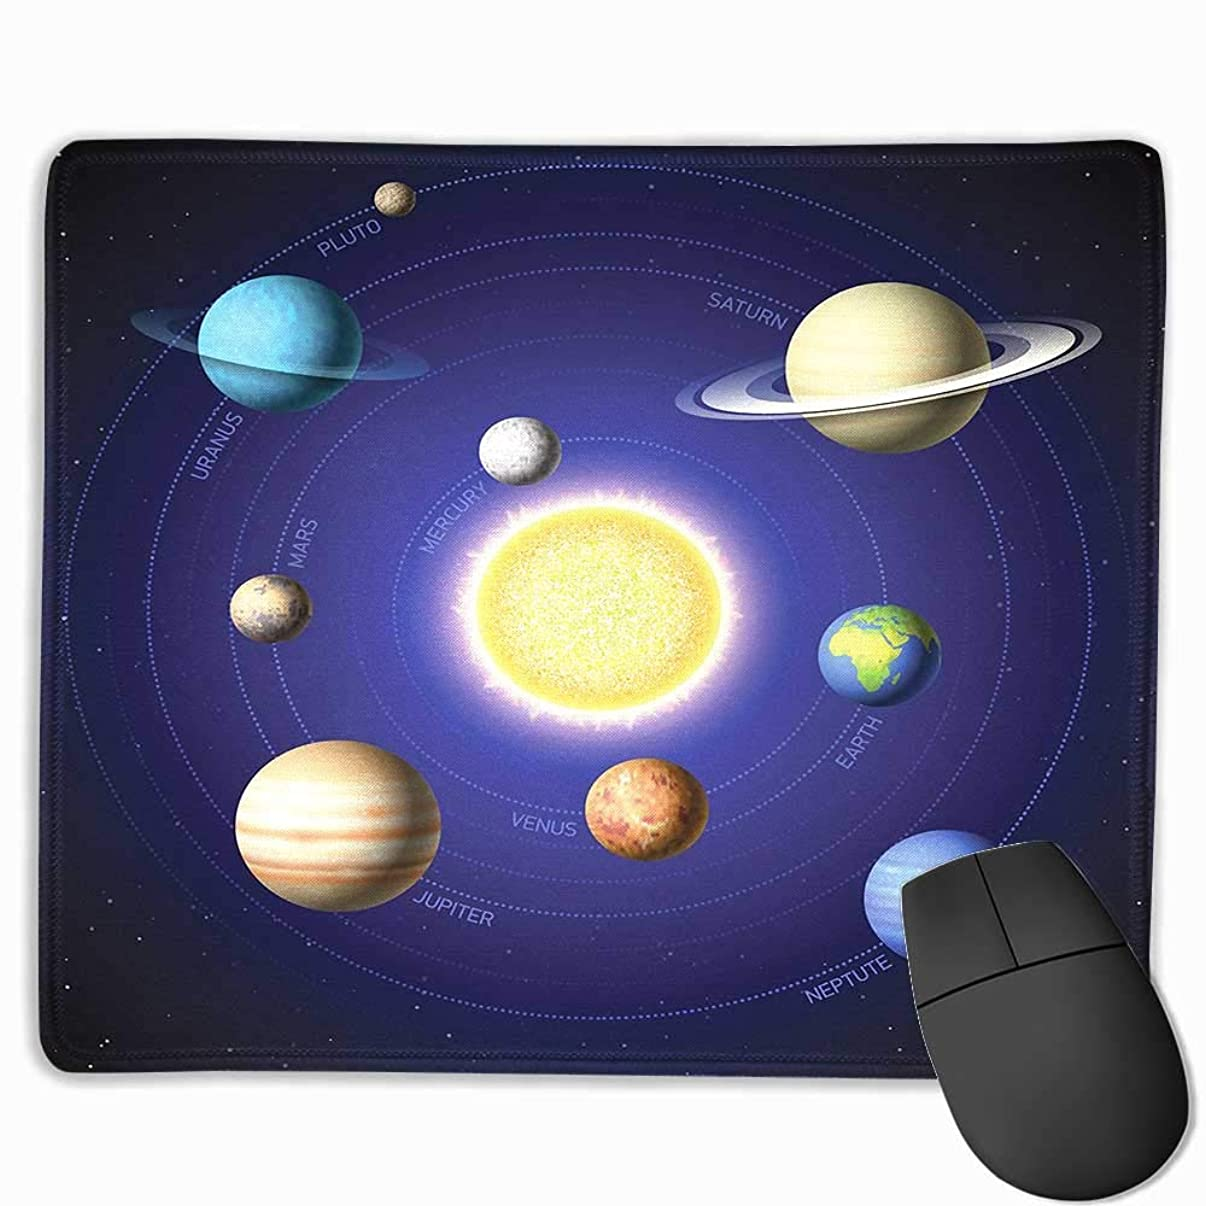 Space Office Mouse Pad Solar System Illustration Showing Planets Around Sun Harmony of Galaxy Science Room Image Custom Mouse pad 8.5